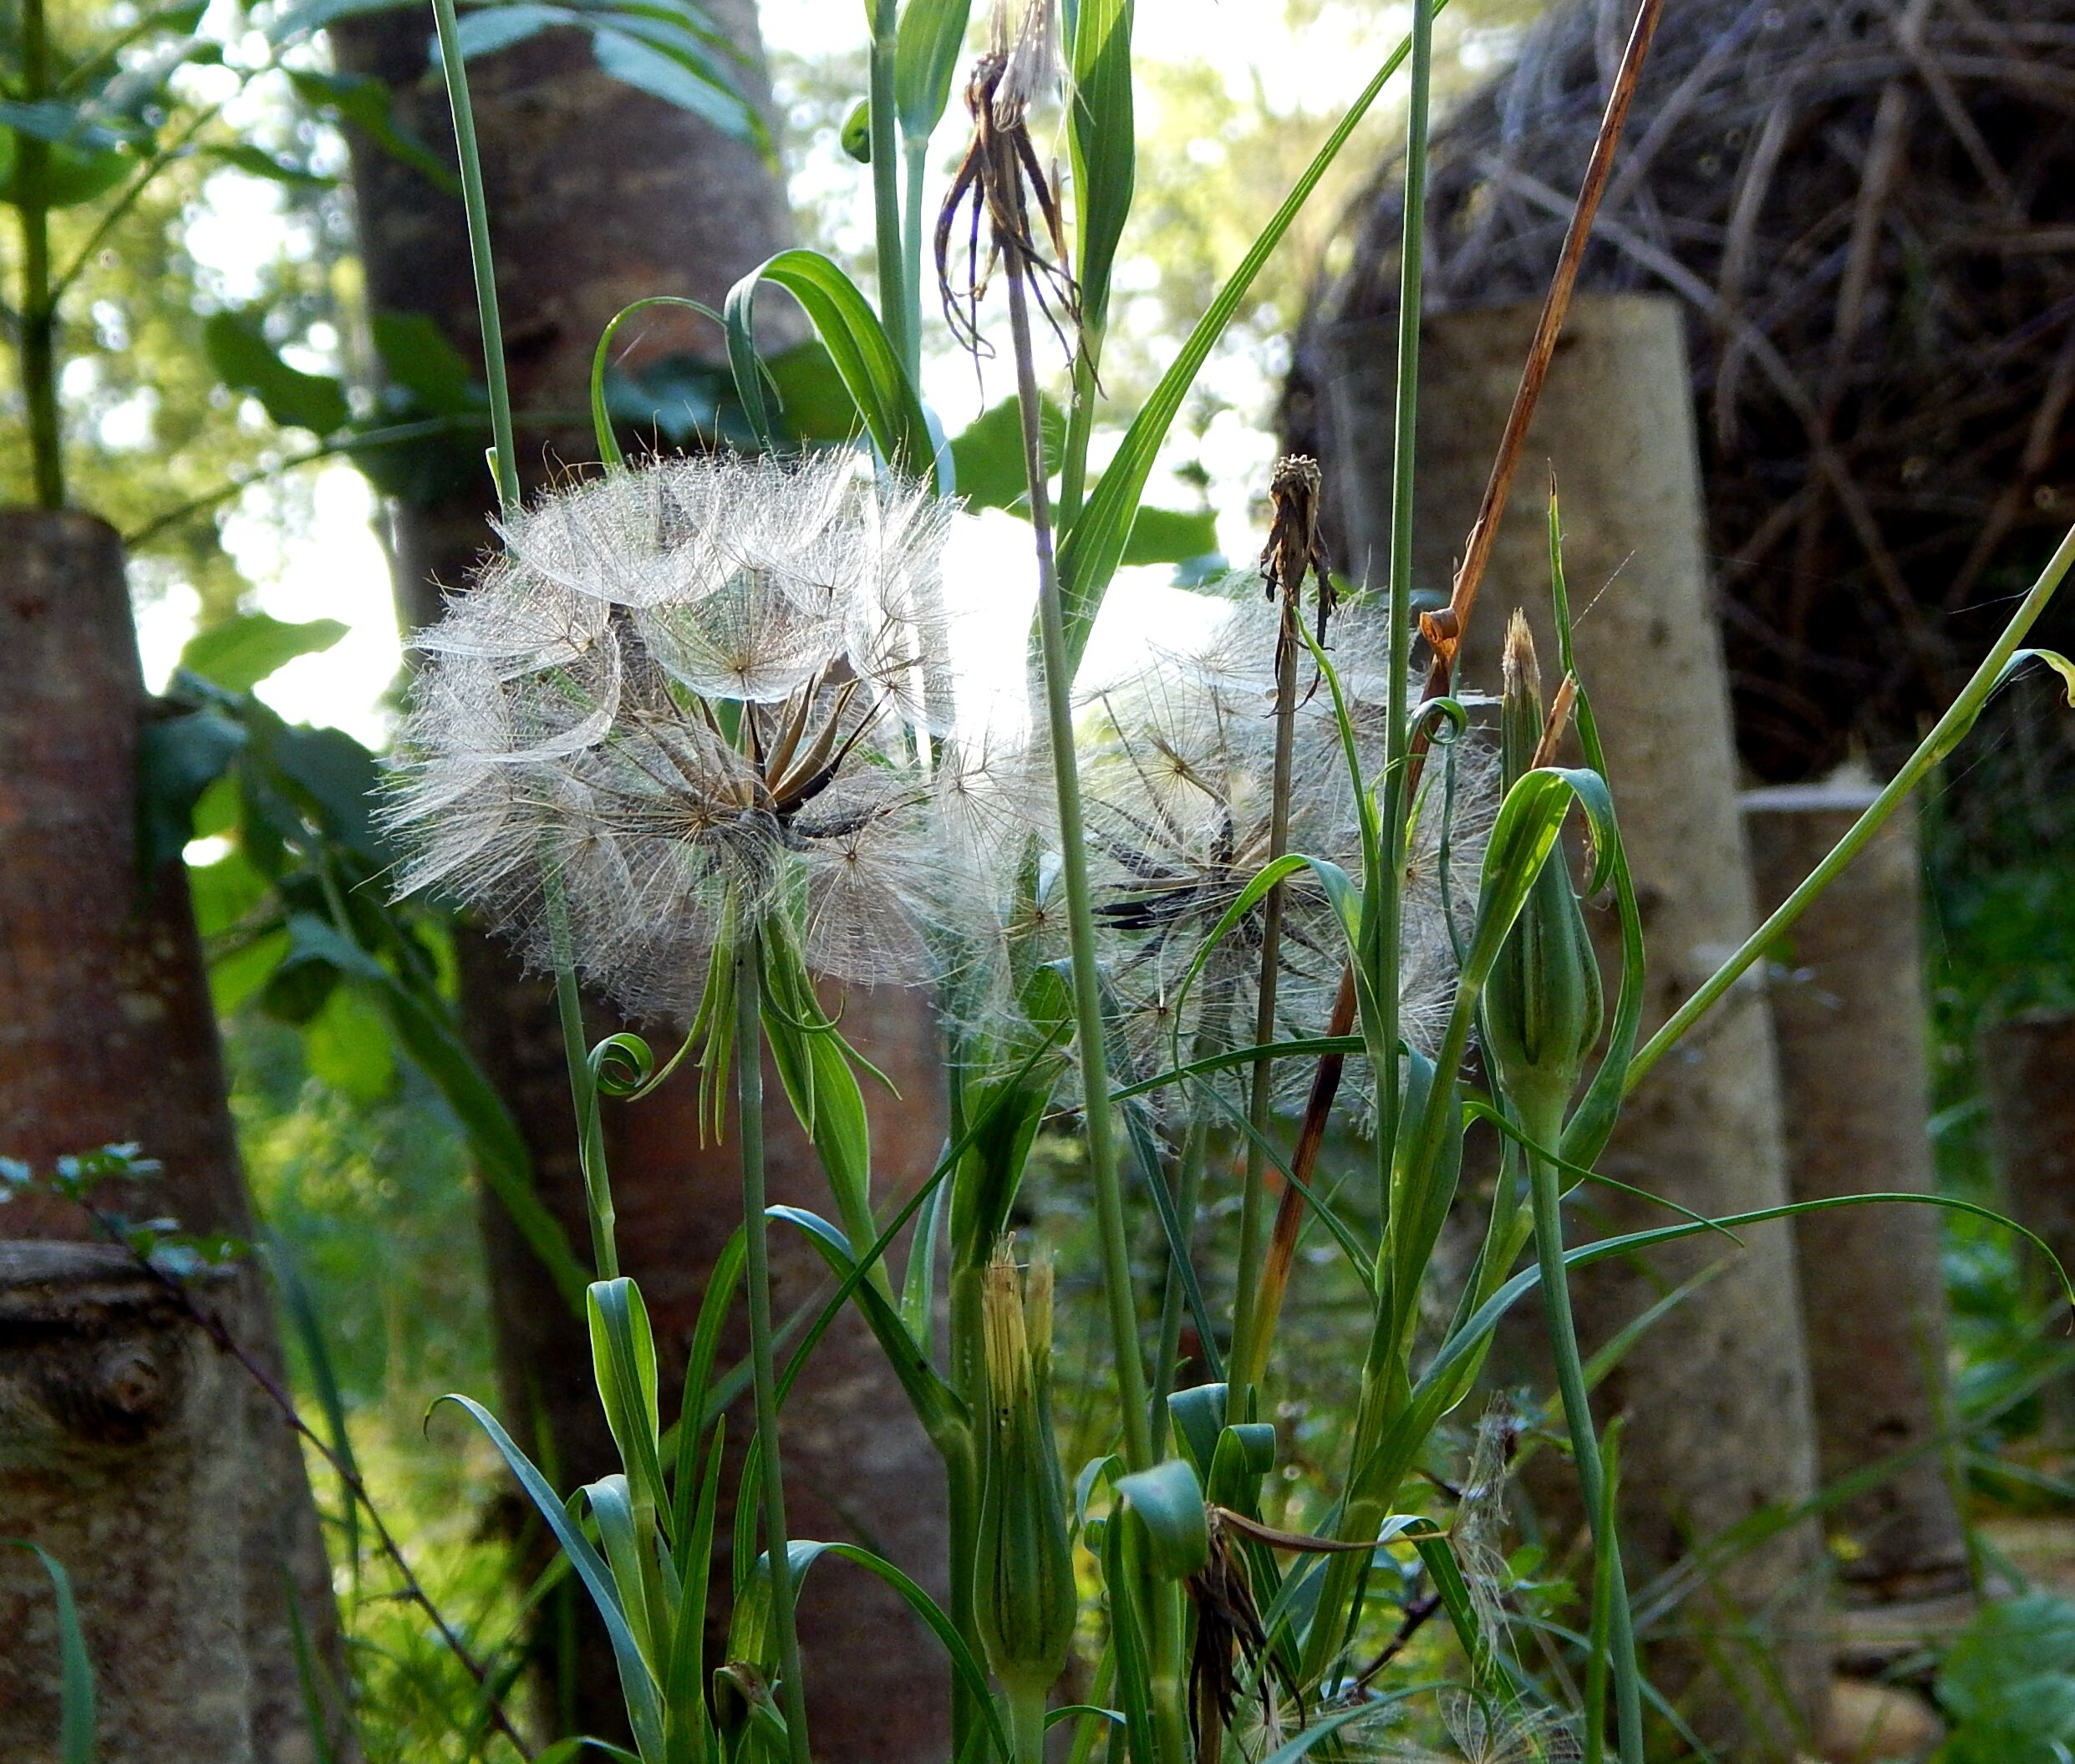 Goat's beard (Tragopogon pratensis) at the entrance to the labyrinth.